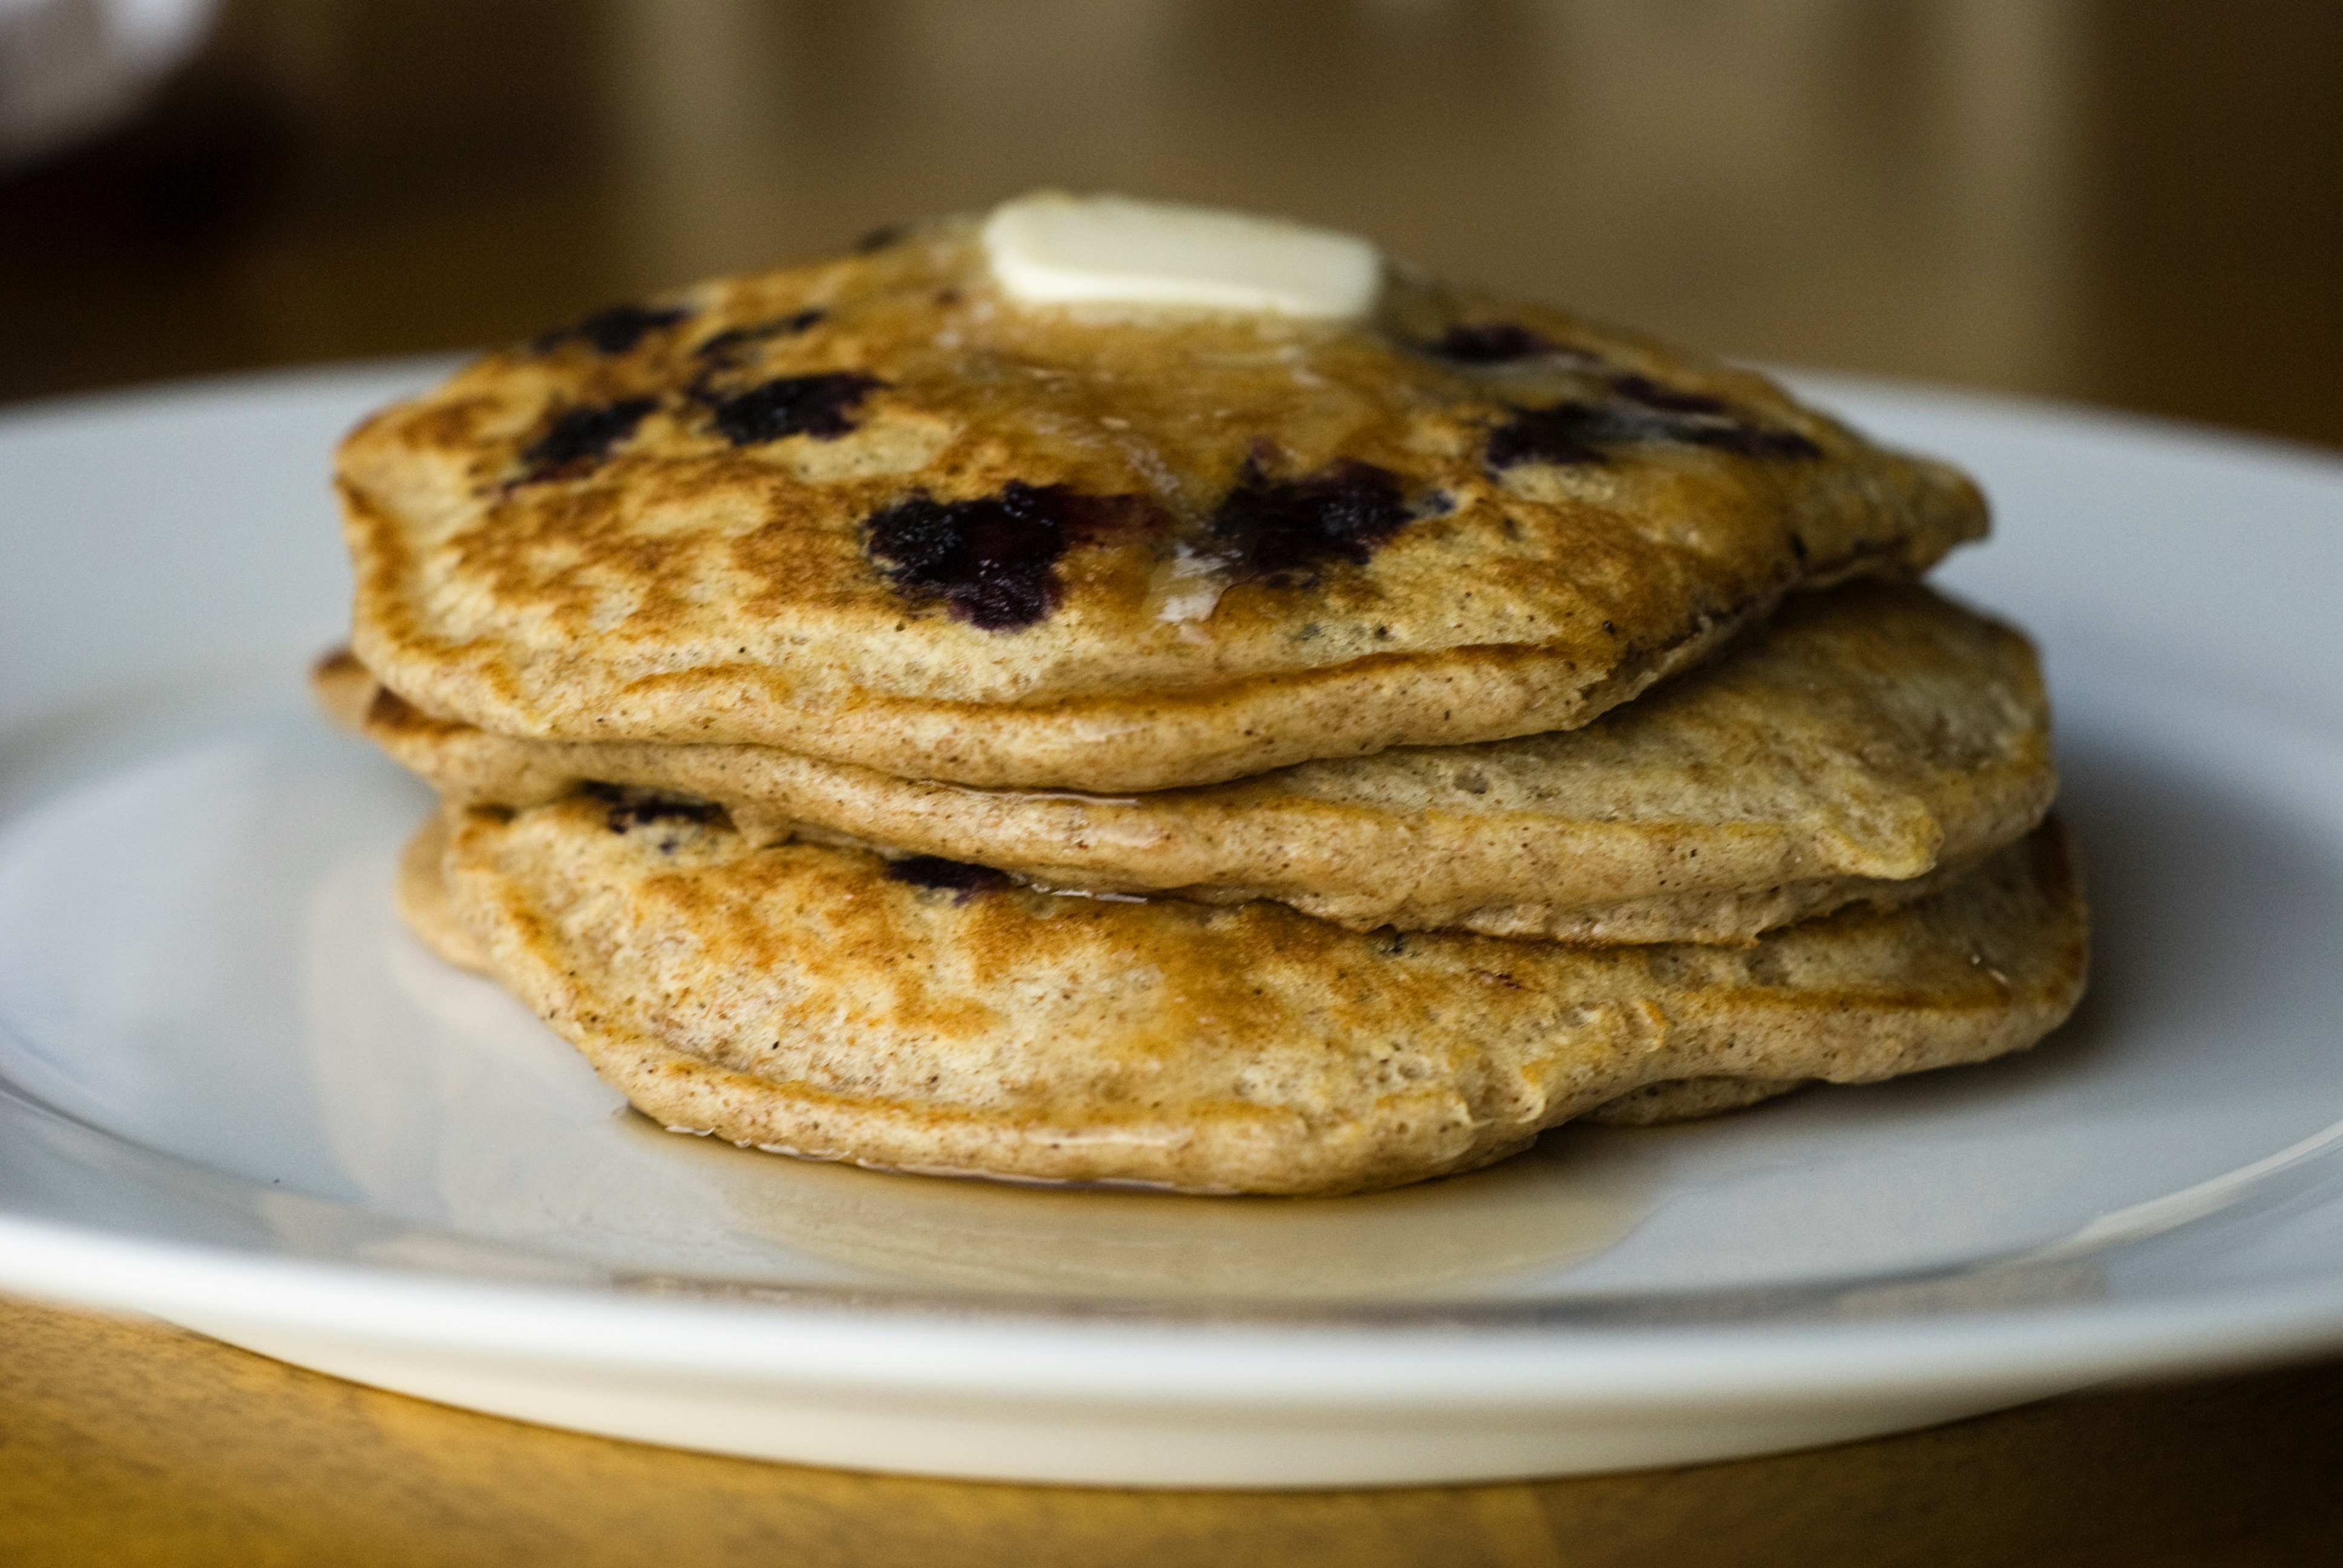 ... pancakes with fresh lemon tree at her house blueberry pancakes